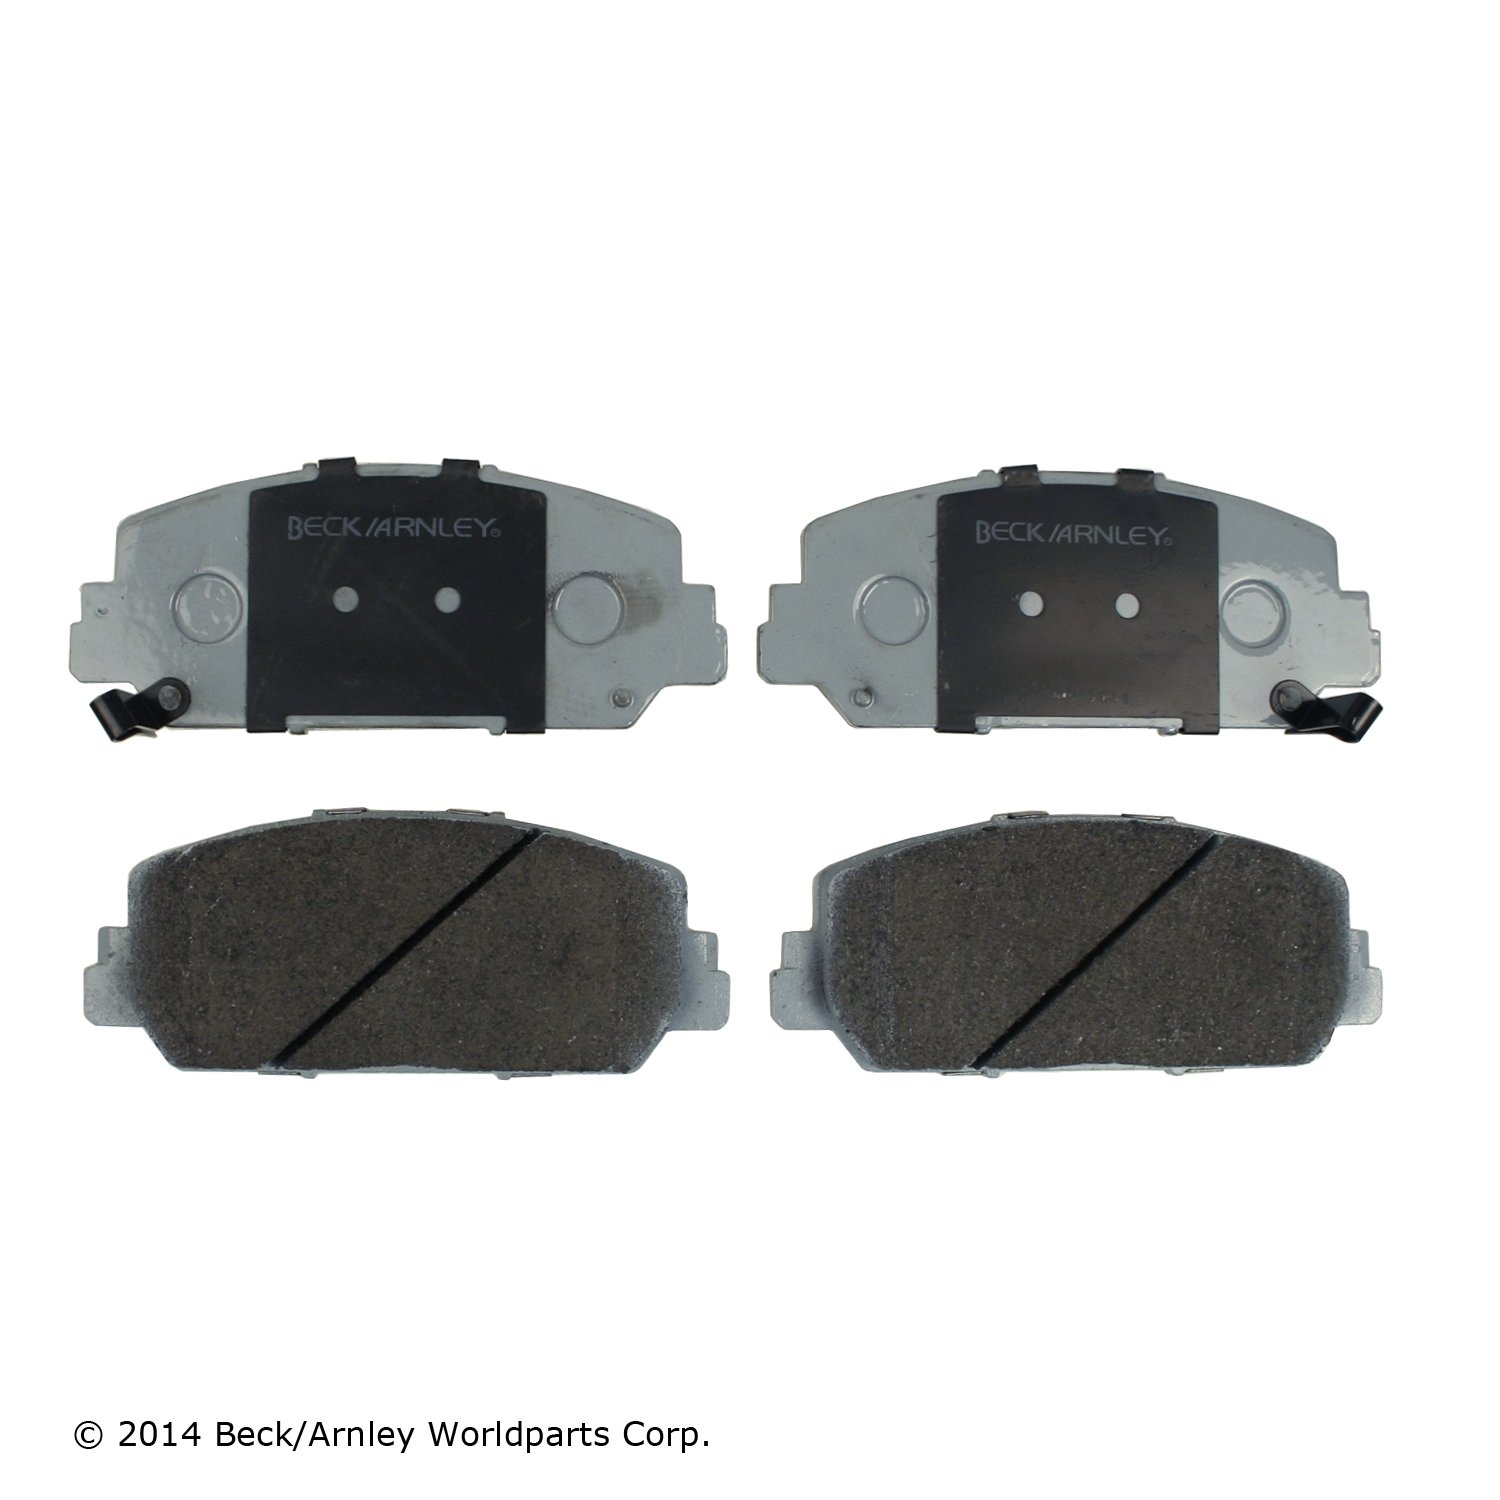 Bendix Premium Copper Free CFC1625 Front Disc Brake Pad Set For Acura ILX Models